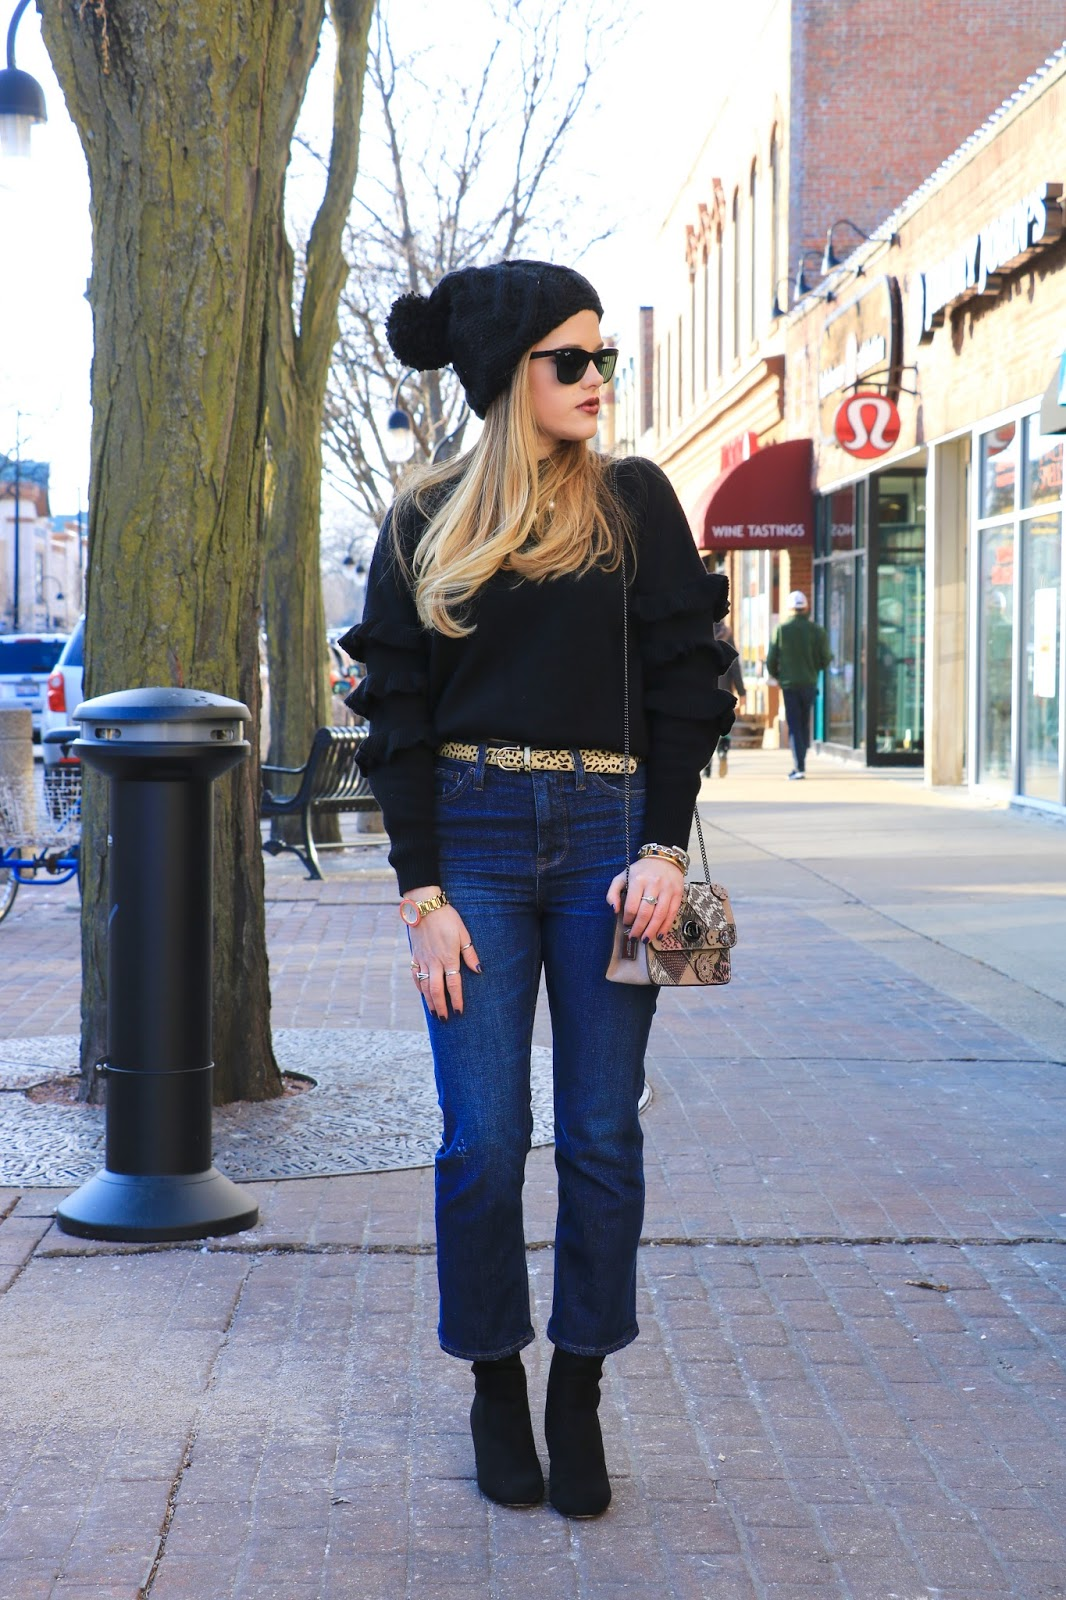 Nyc fashion blogger Kathleen Harper showing how to wear cropped flare jeans